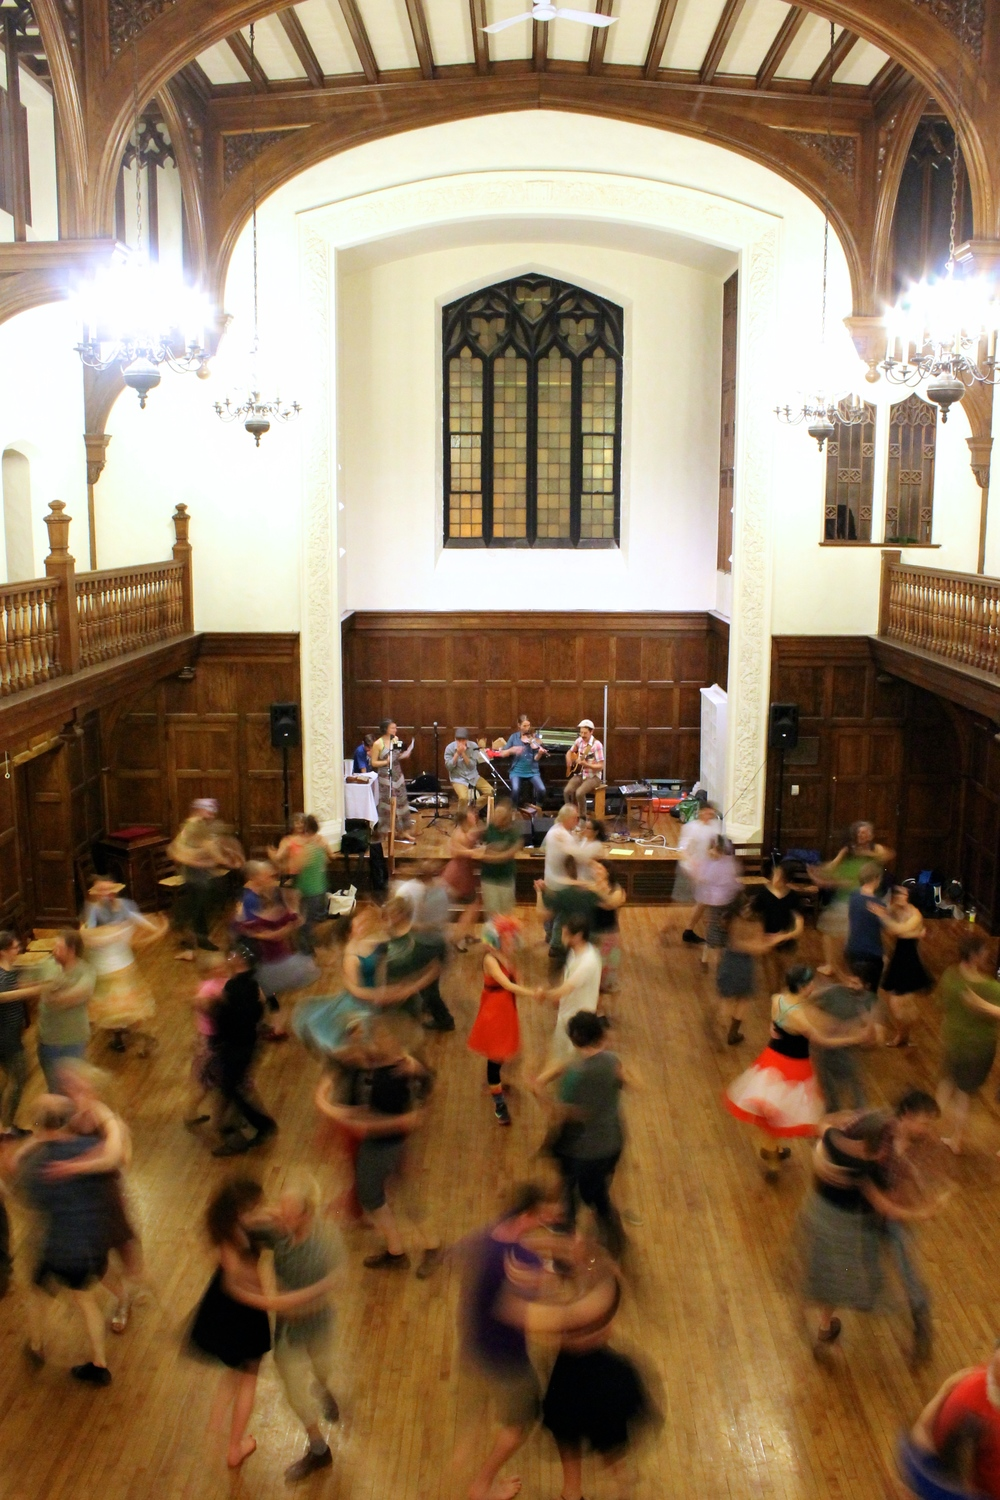 Image of April 21, 2016 Portland Intown Contra Dance by Naomi Marthai.